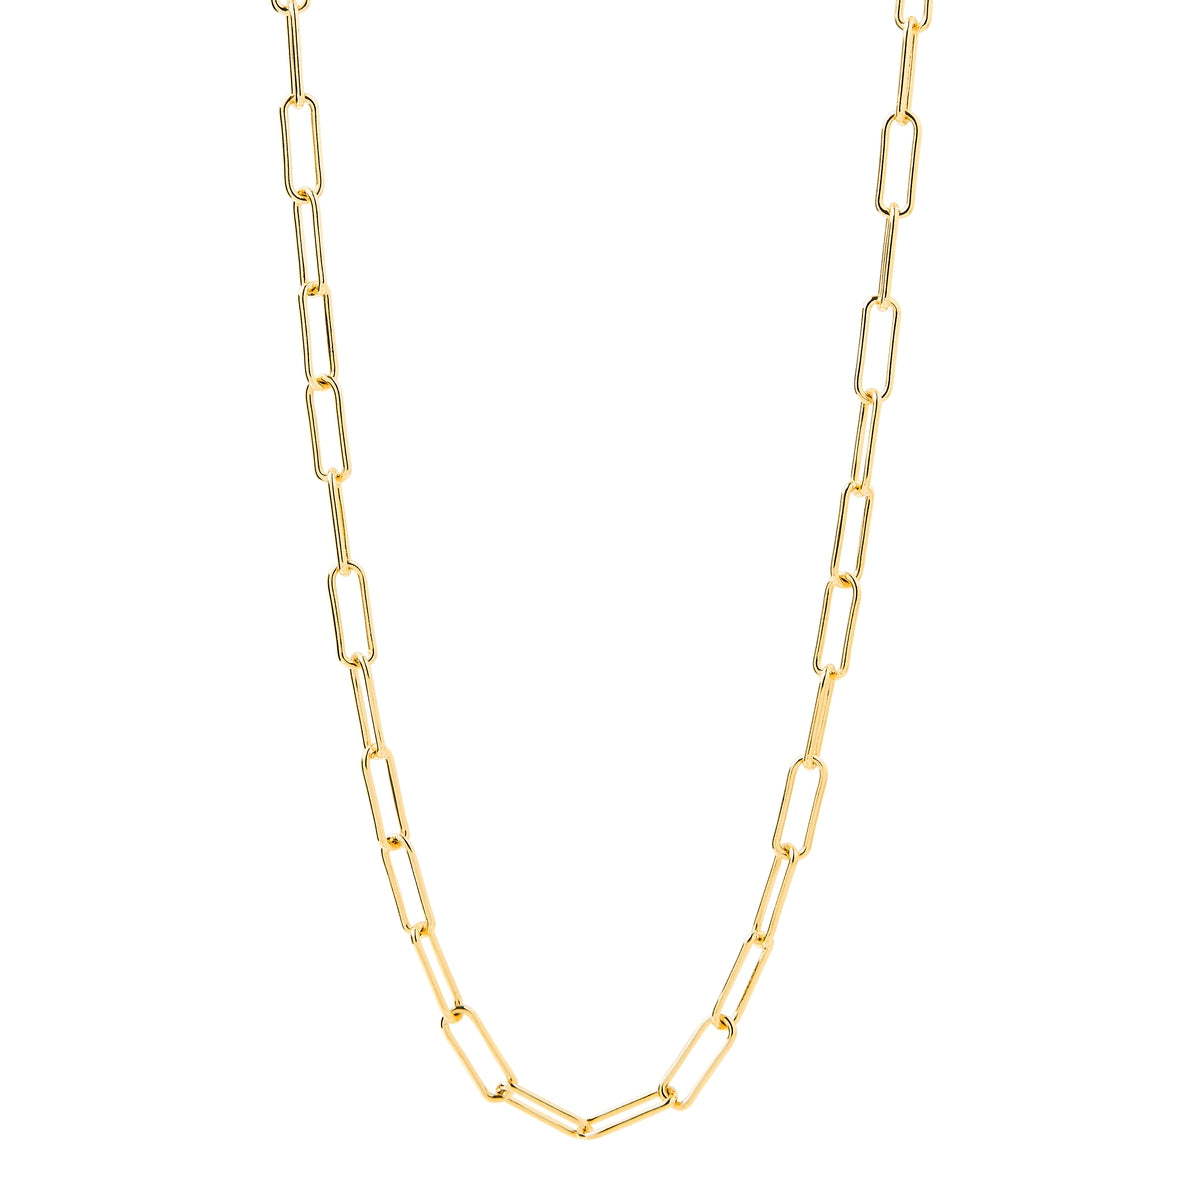 Vista Chain Yellow Gold Necklace (60cm)